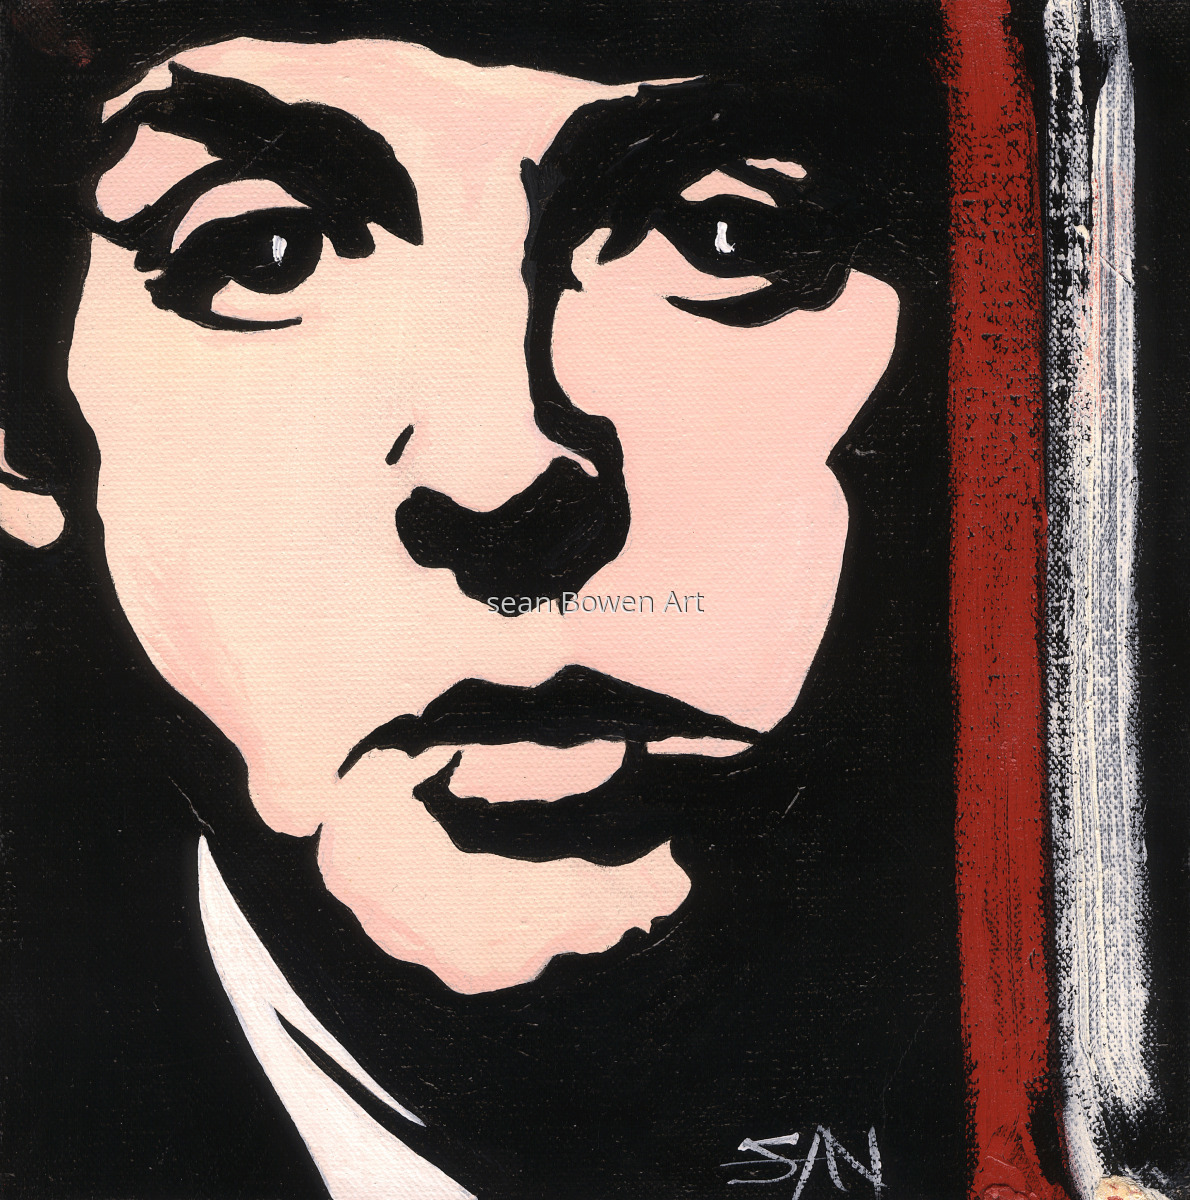 Figurative Acrylic Paintings Macca Paul McCartney By Sean Bowen Art